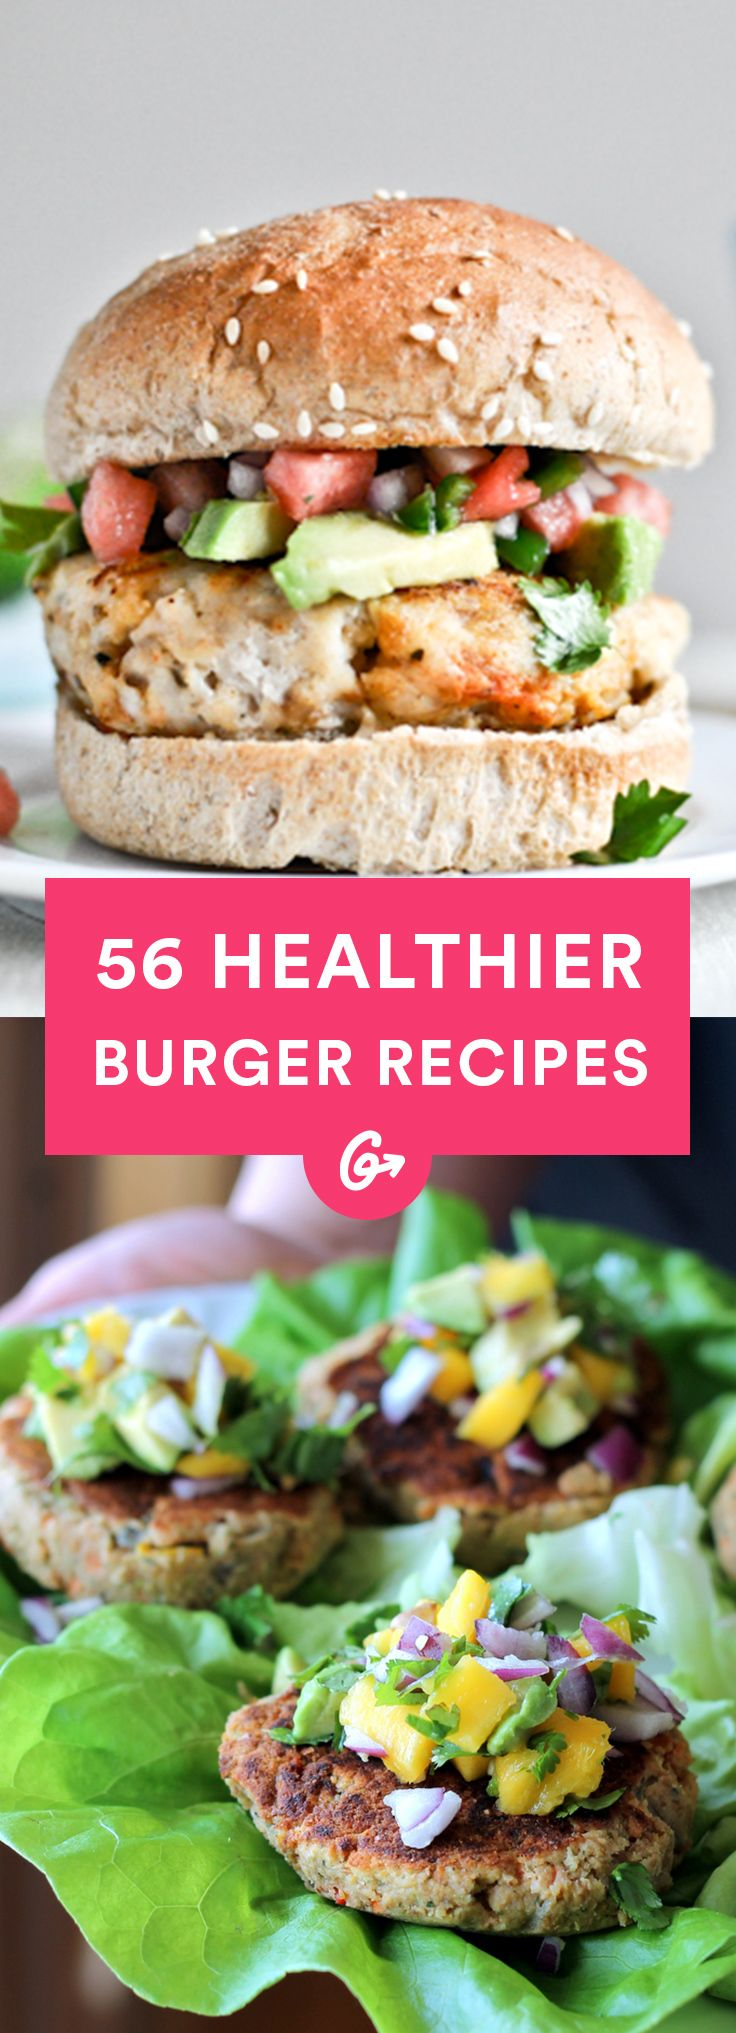 Celebrate the unofficial start of summer with some of the tastiest and most creative burger... http://greatist.com/health/healthy-burger-recipes